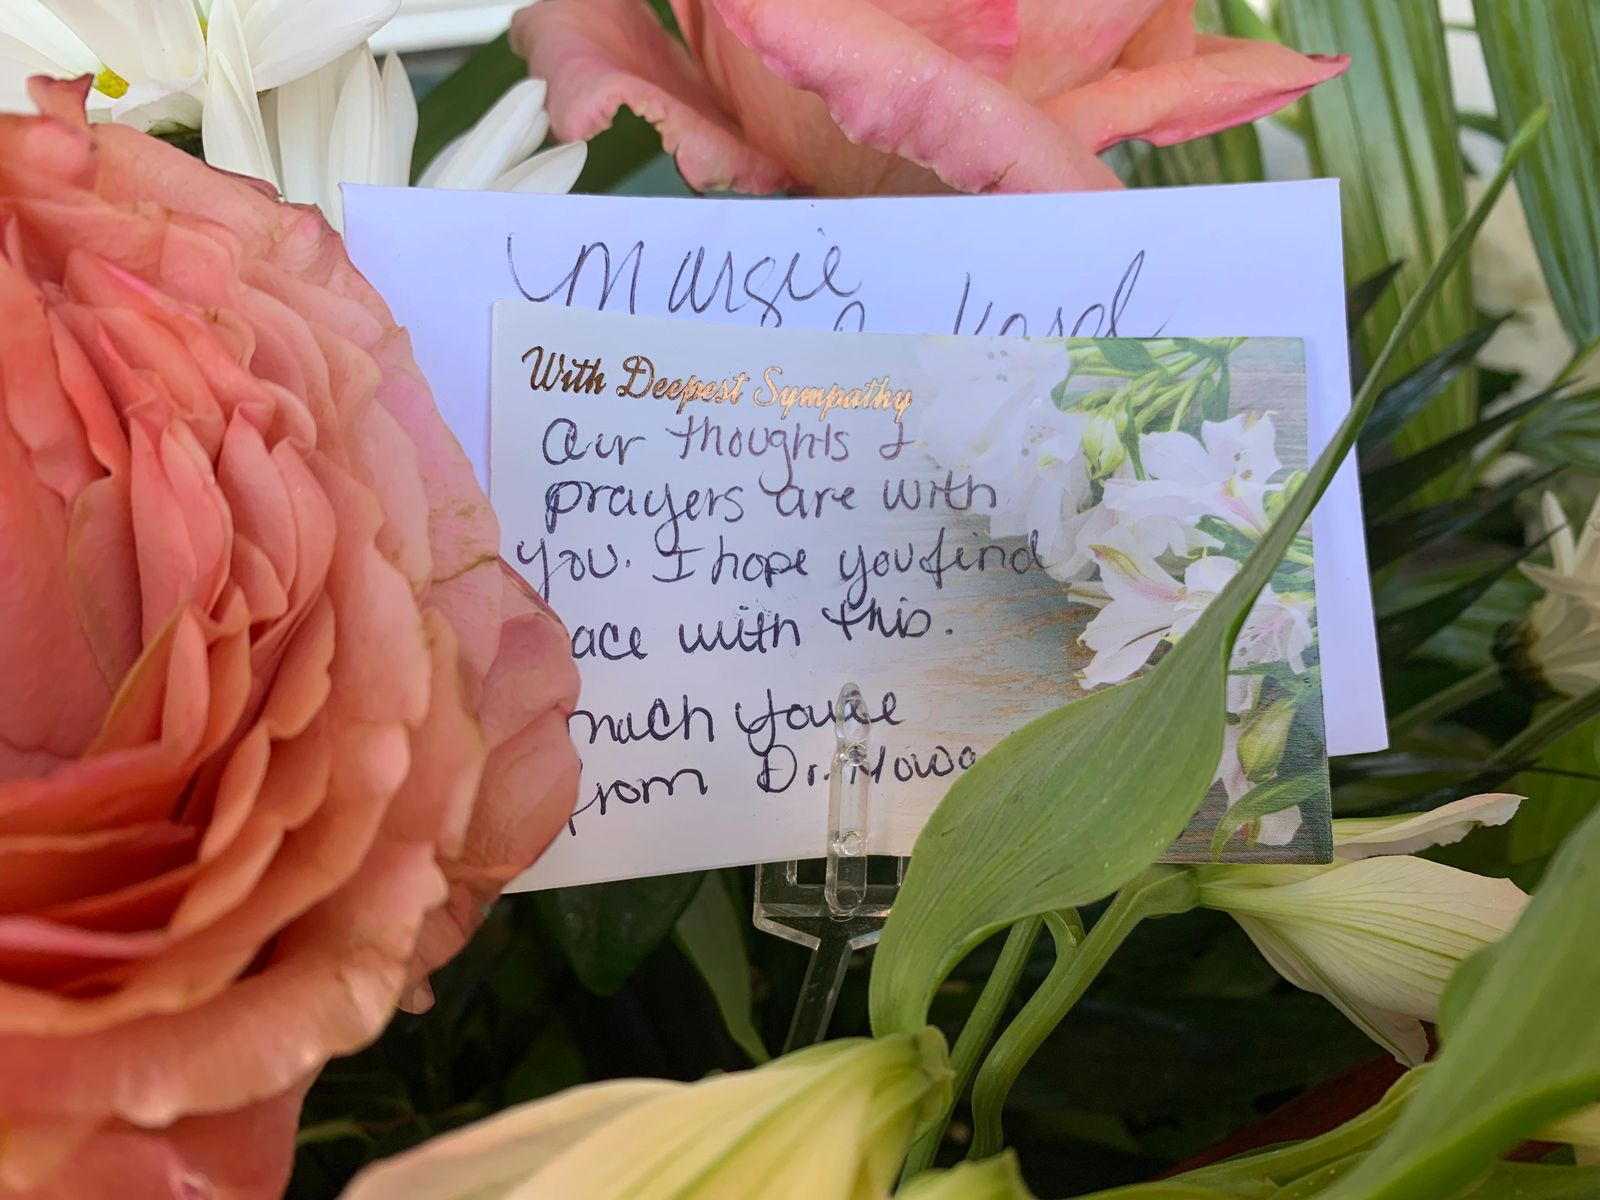 Cards left with flowers at funeral services for Margie Reckard, one of the victim's of the El Paso Walmart shooting. Aug. 16, 2019 (Jala Washington - KFOX14/CBS4)